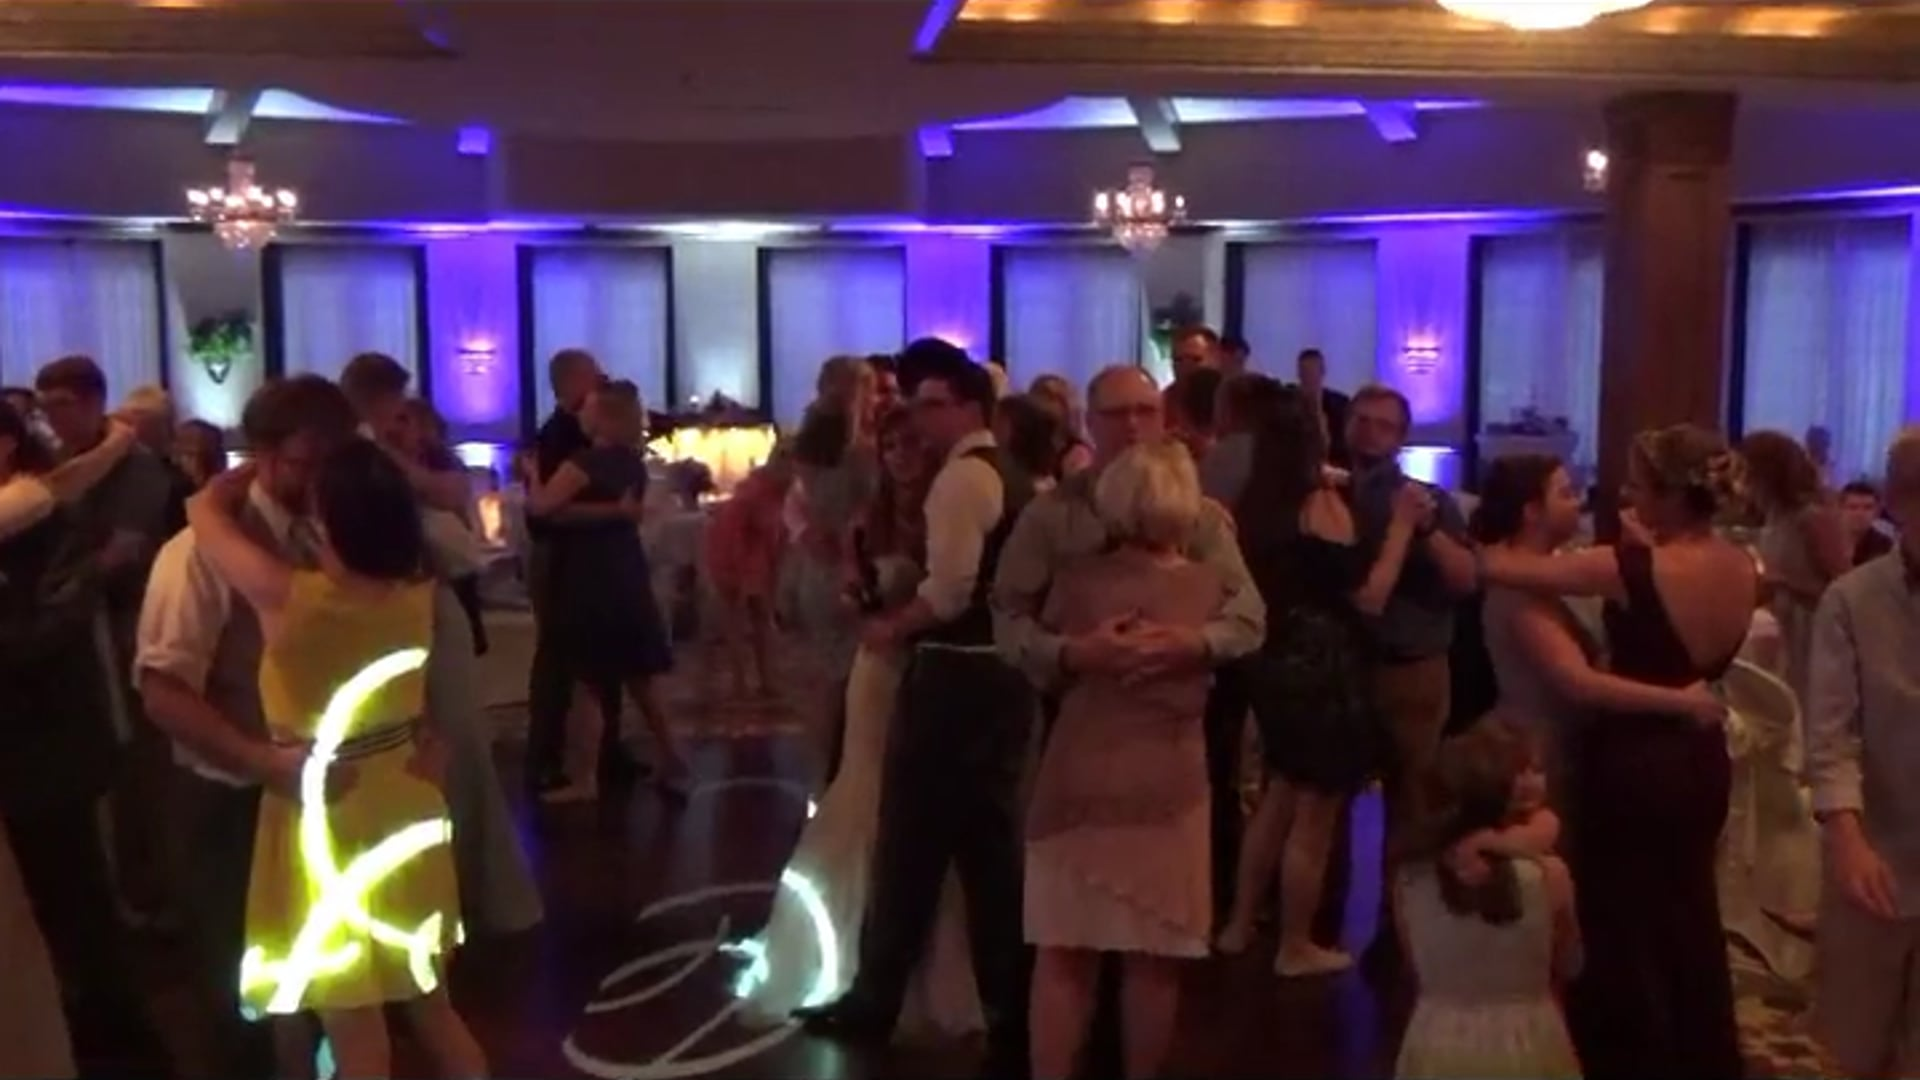 Emily and Perry's Wedding Reception - May 13th 2017 - Grapevine DJs